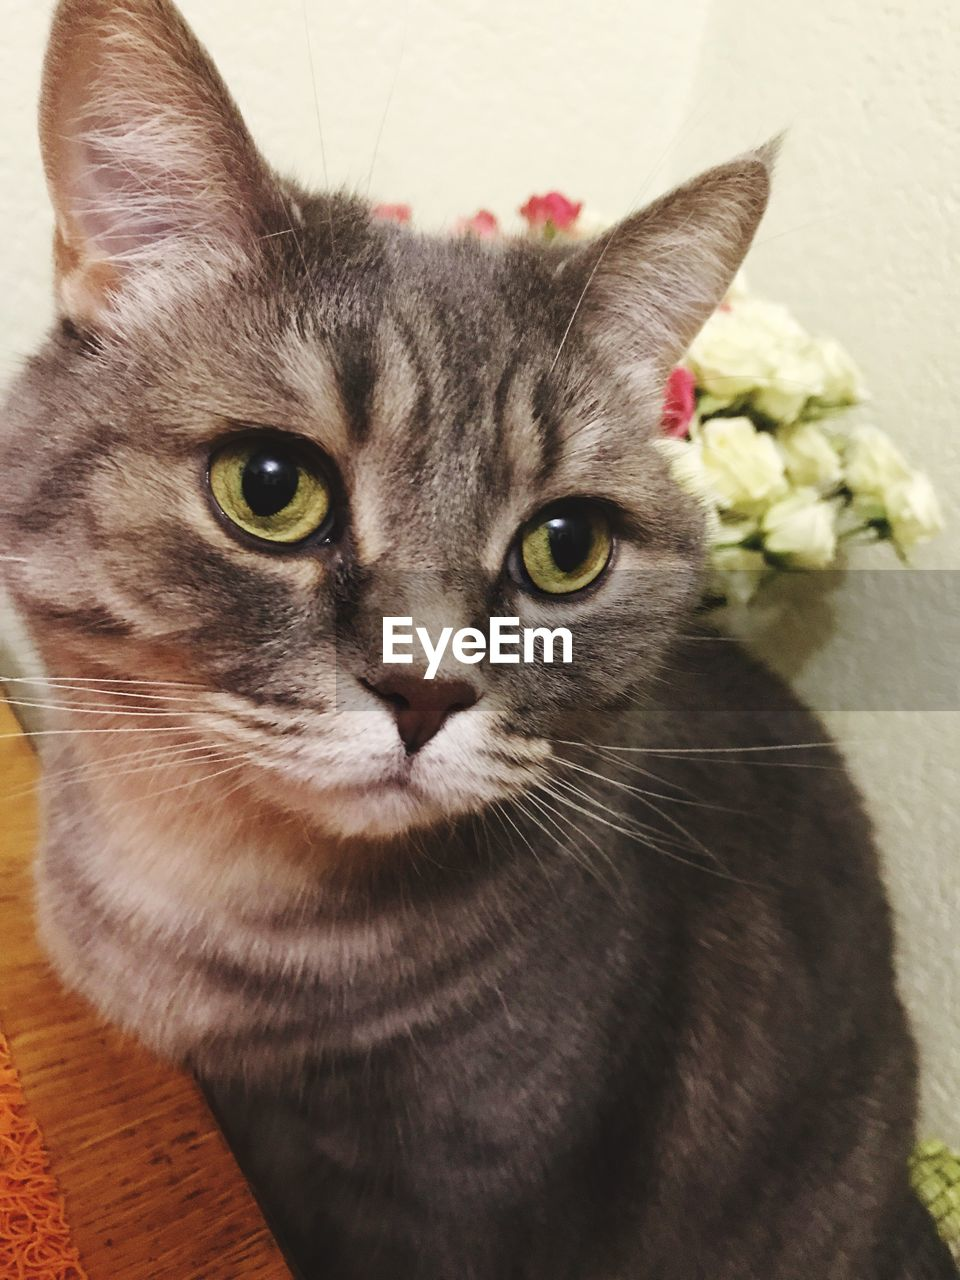 cat, domestic cat, domestic, feline, pets, domestic animals, mammal, animal, animal themes, one animal, vertebrate, portrait, looking at camera, no people, close-up, whisker, indoors, flowering plant, flower, high angle view, animal head, animal eye